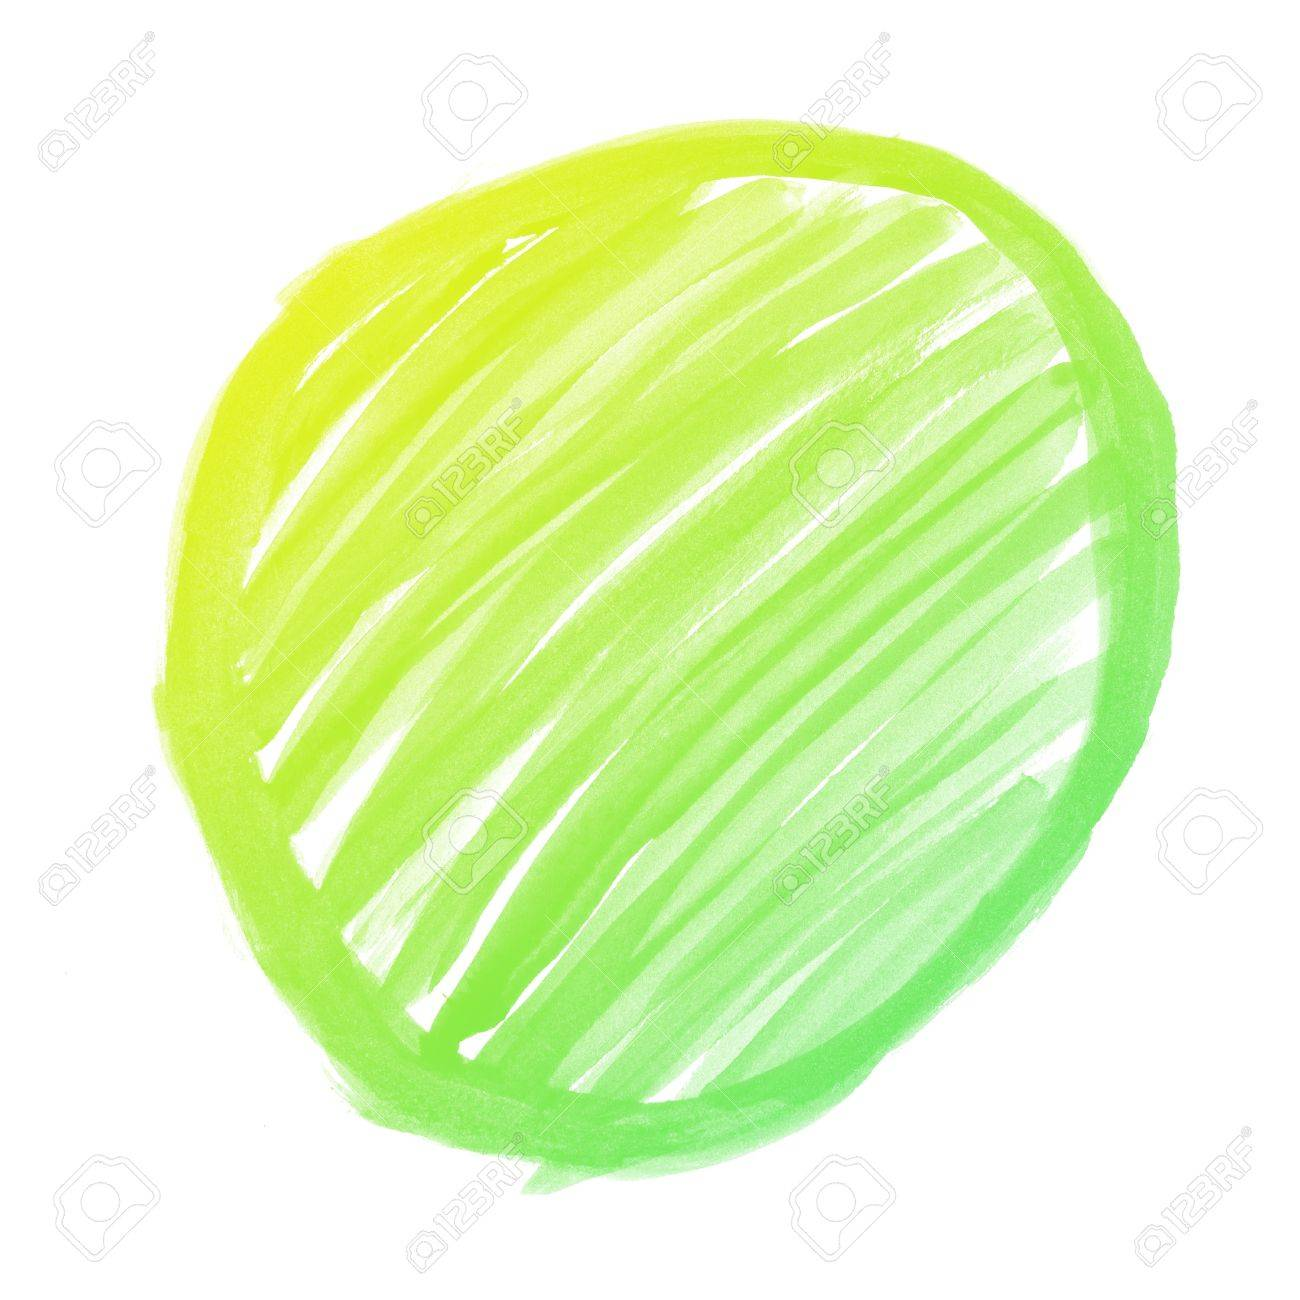 colorful Abstract circle water color art hand paint background Stock Photo - 16740450